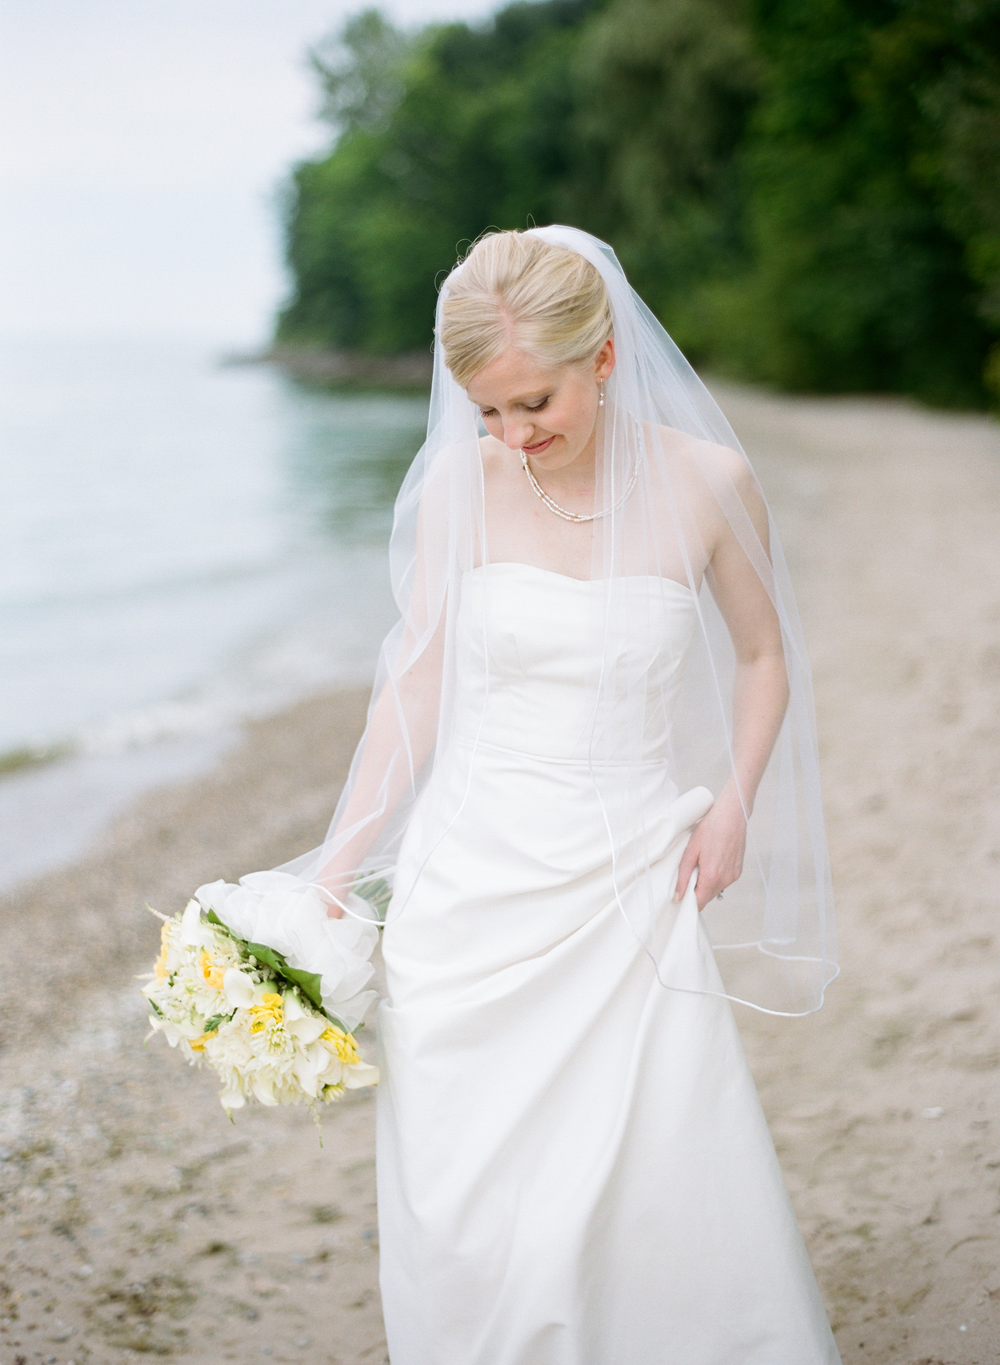 pritzlaff-milwaukee-wedding-photographer-37